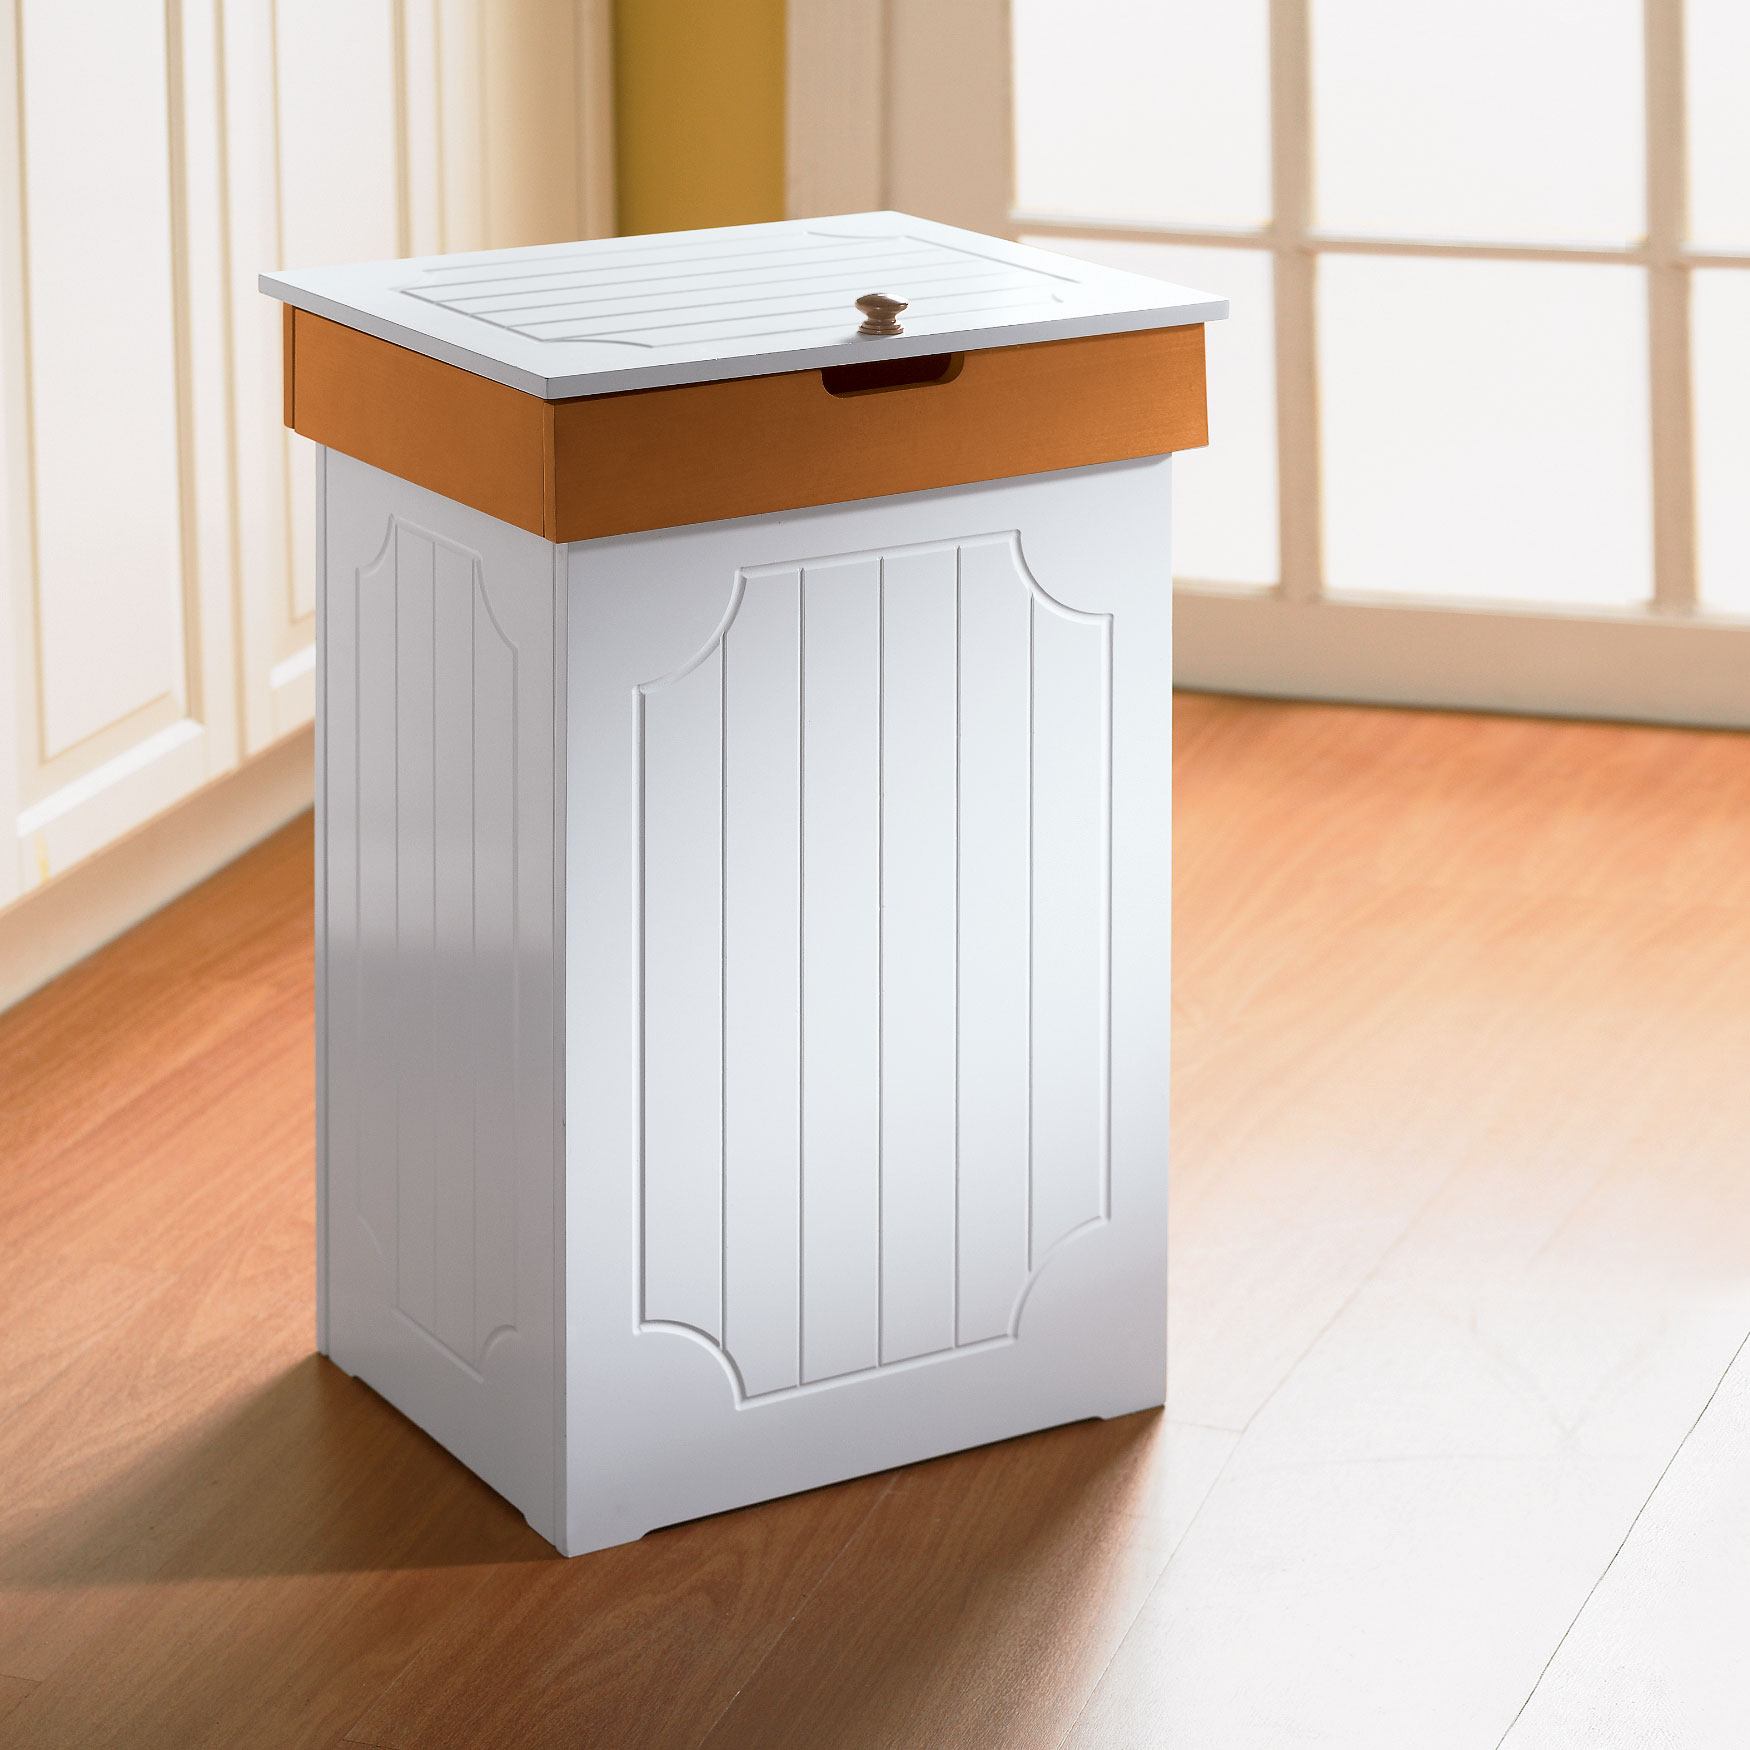 Country Kitchen Trash Can, WHITE HONEY